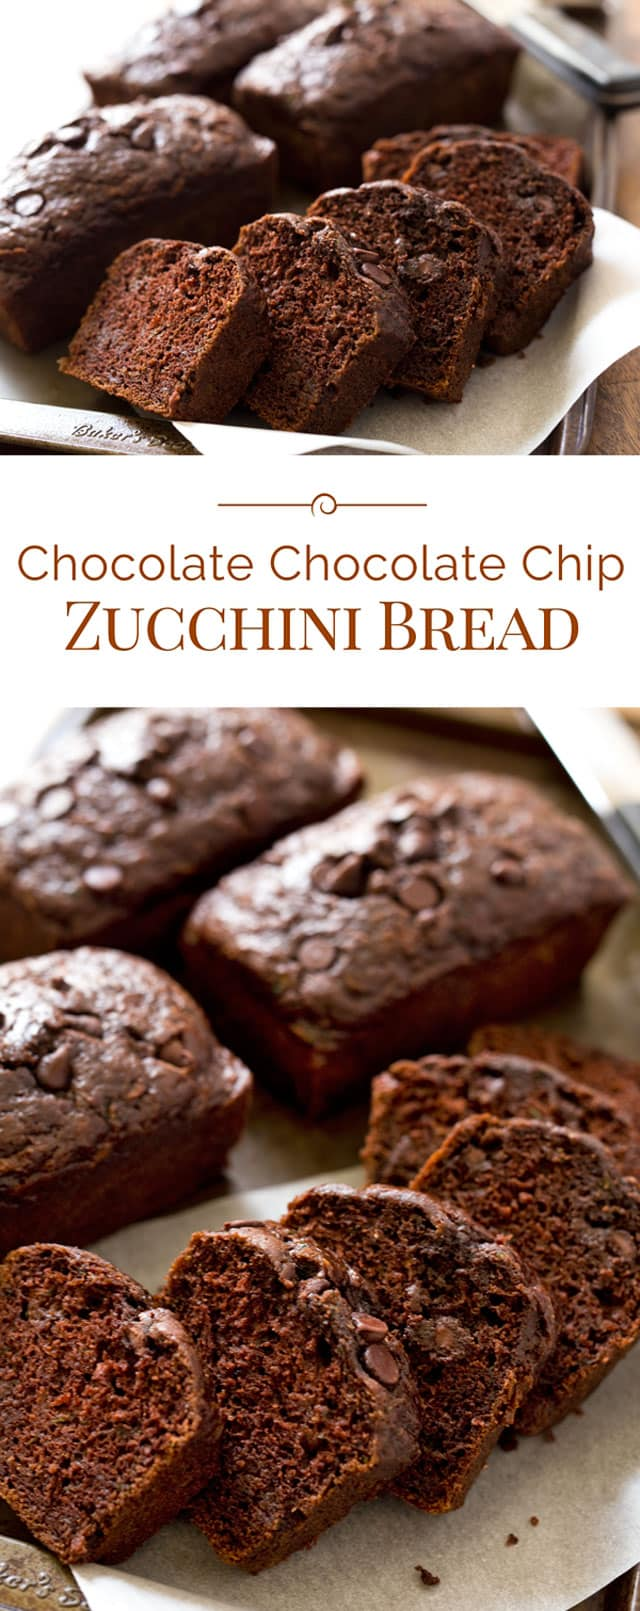 Chocolate-Chocolate-Chip-Zucchini-Bread-Collage-Barbara-Bakes